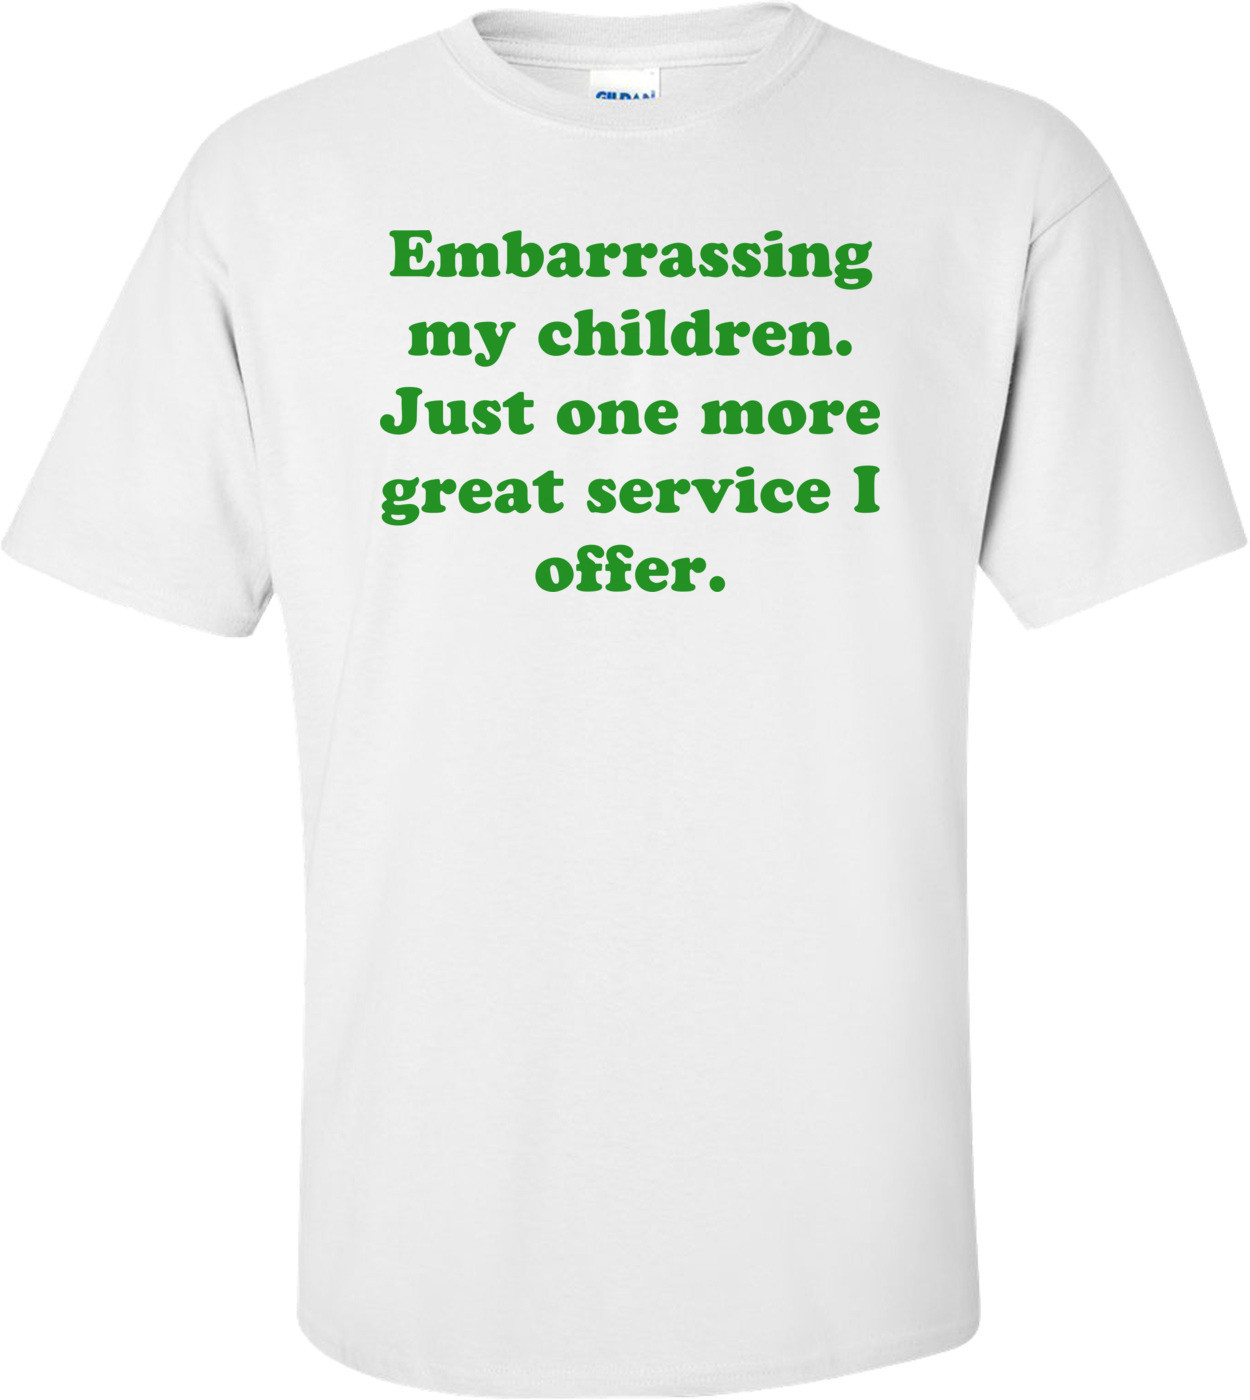 Embarrassing my children. Just one more great service I offer. Shirt